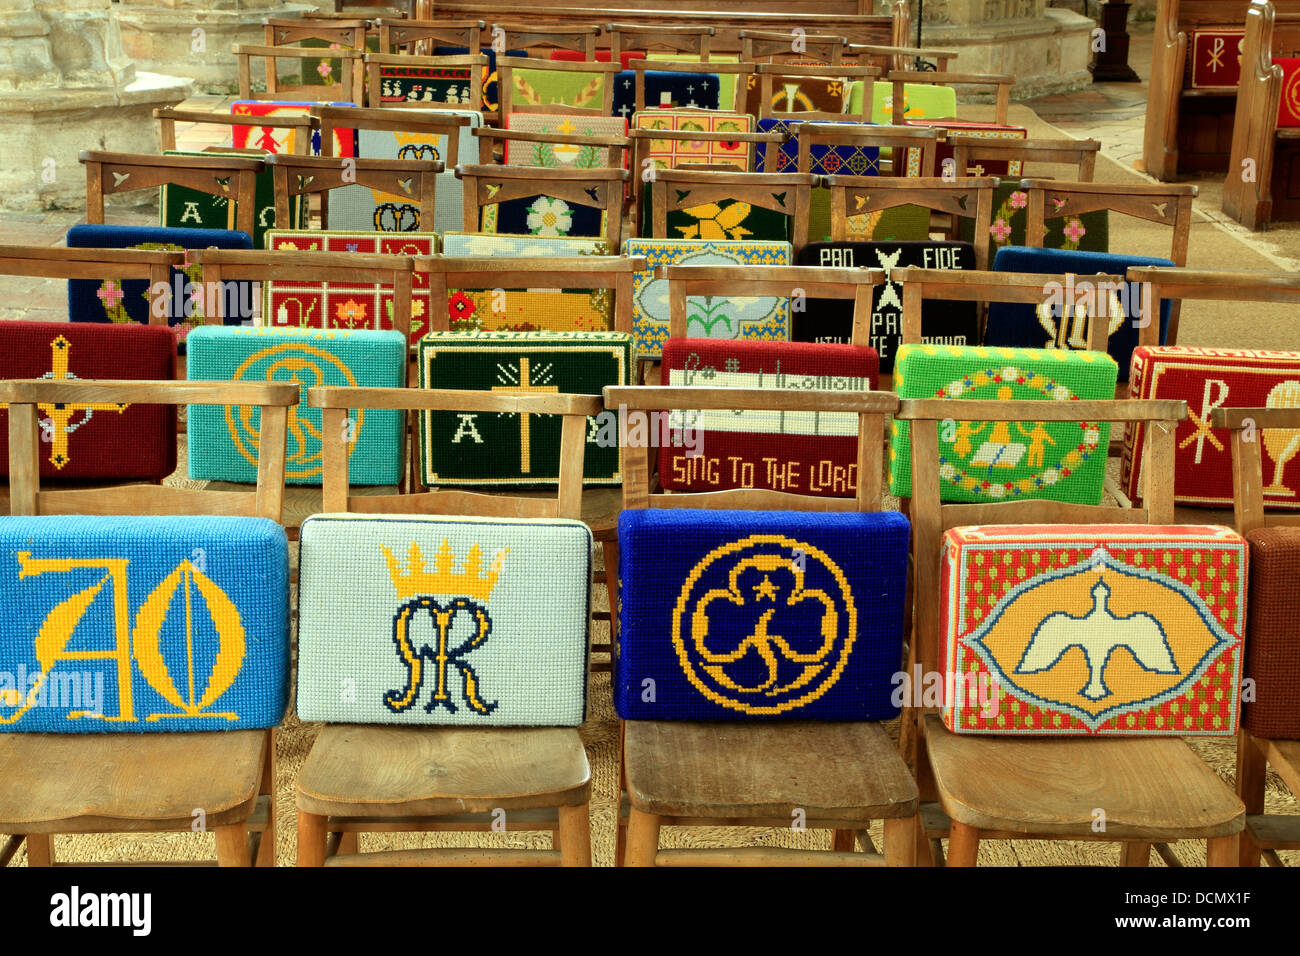 https www alamy com stock photo church kneeling cushions pew pews chair chairs embroidered embroidery 59466443 html